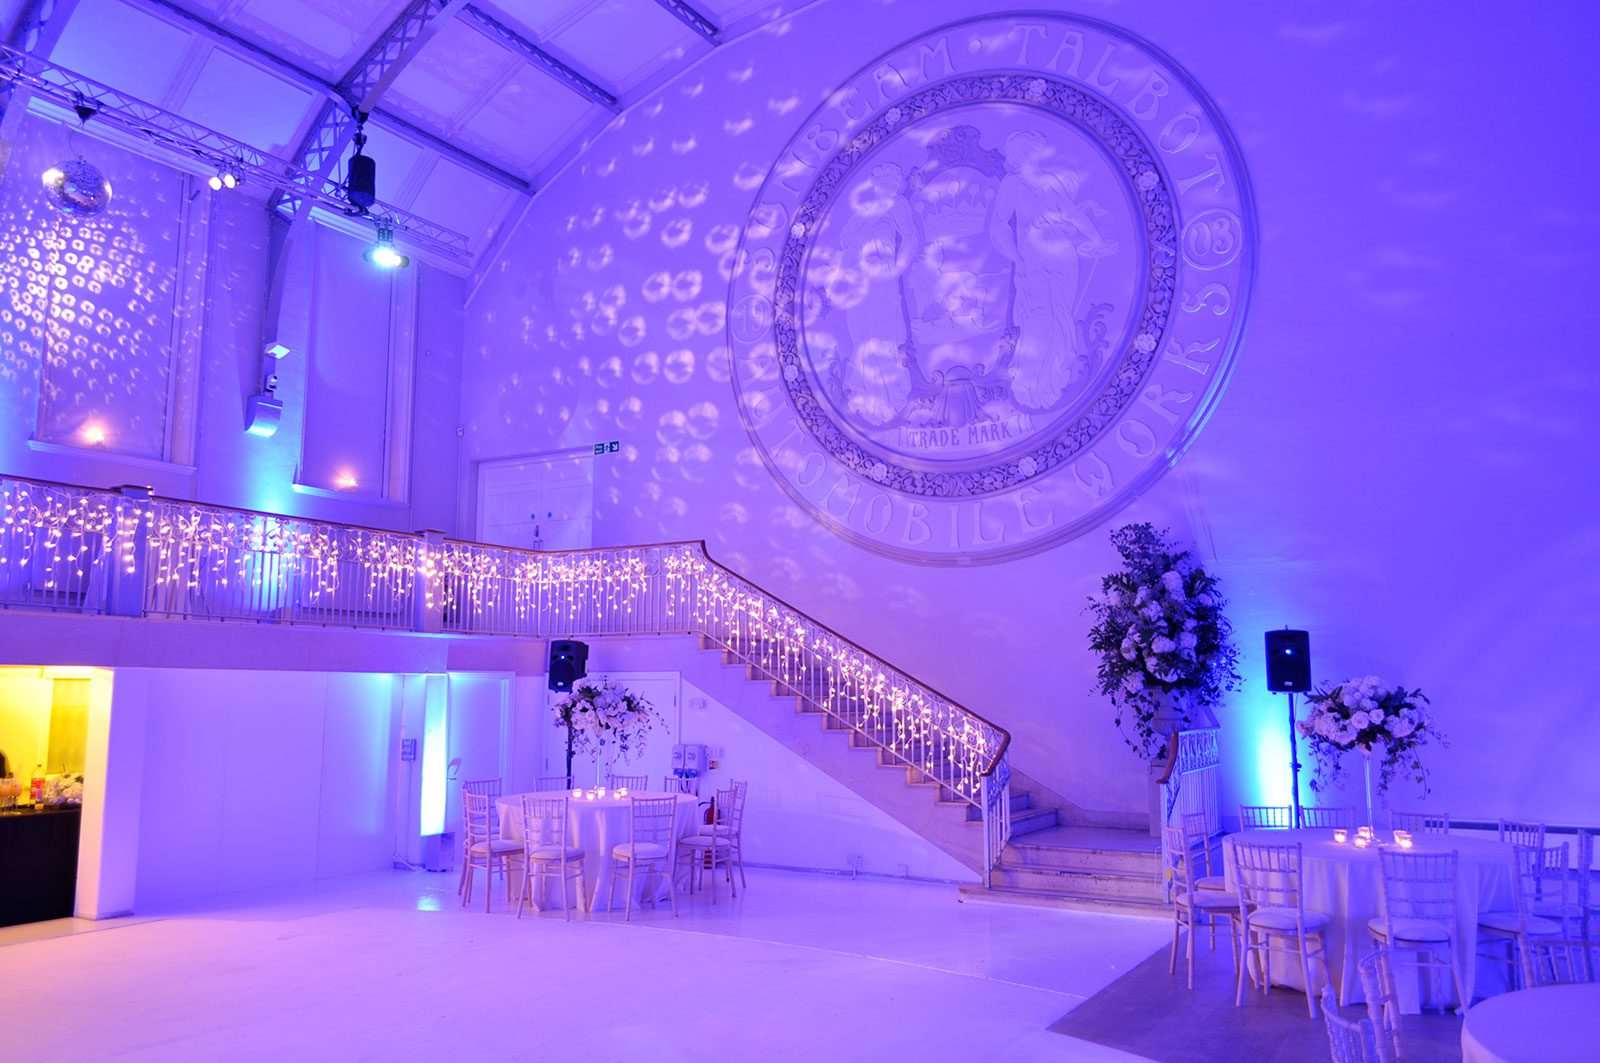 Bespoke Events at Sundeam Studios